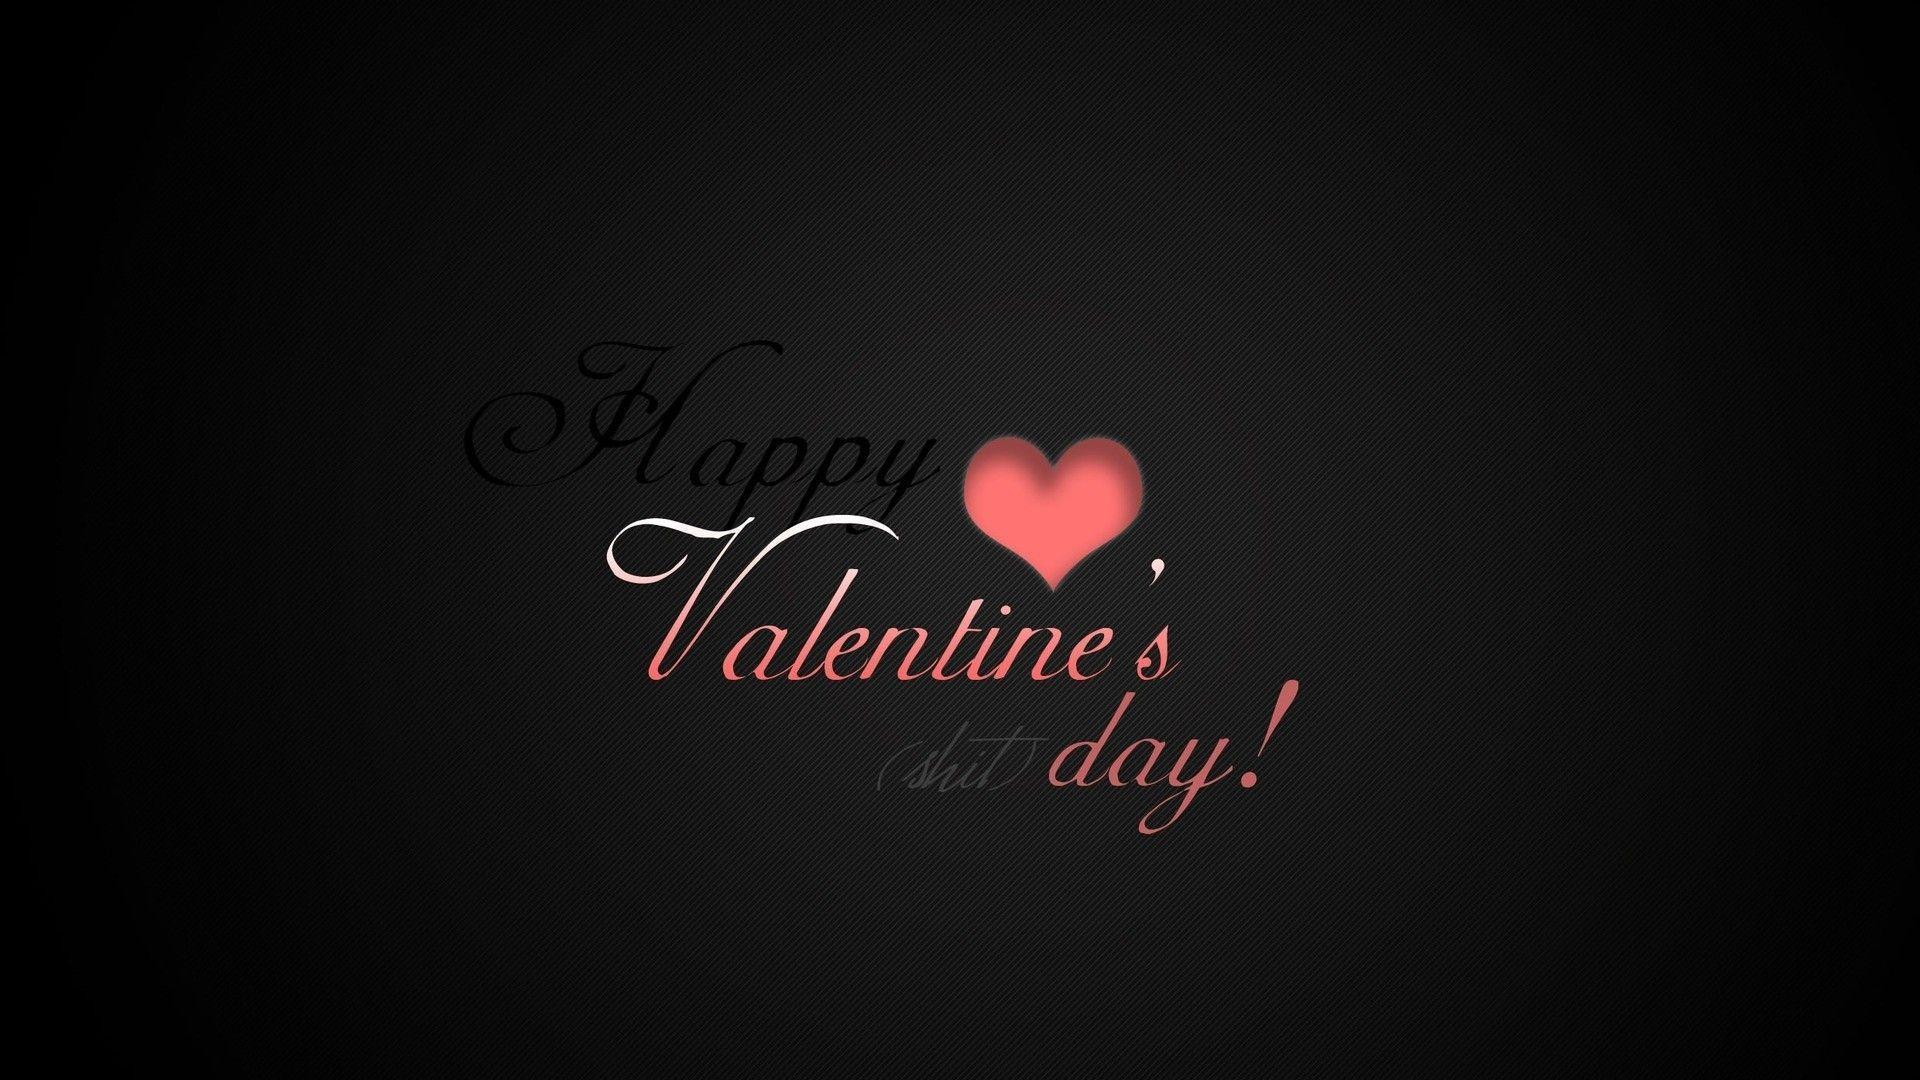 funny happy valentines day quotes 2014 hd wallpapers hd